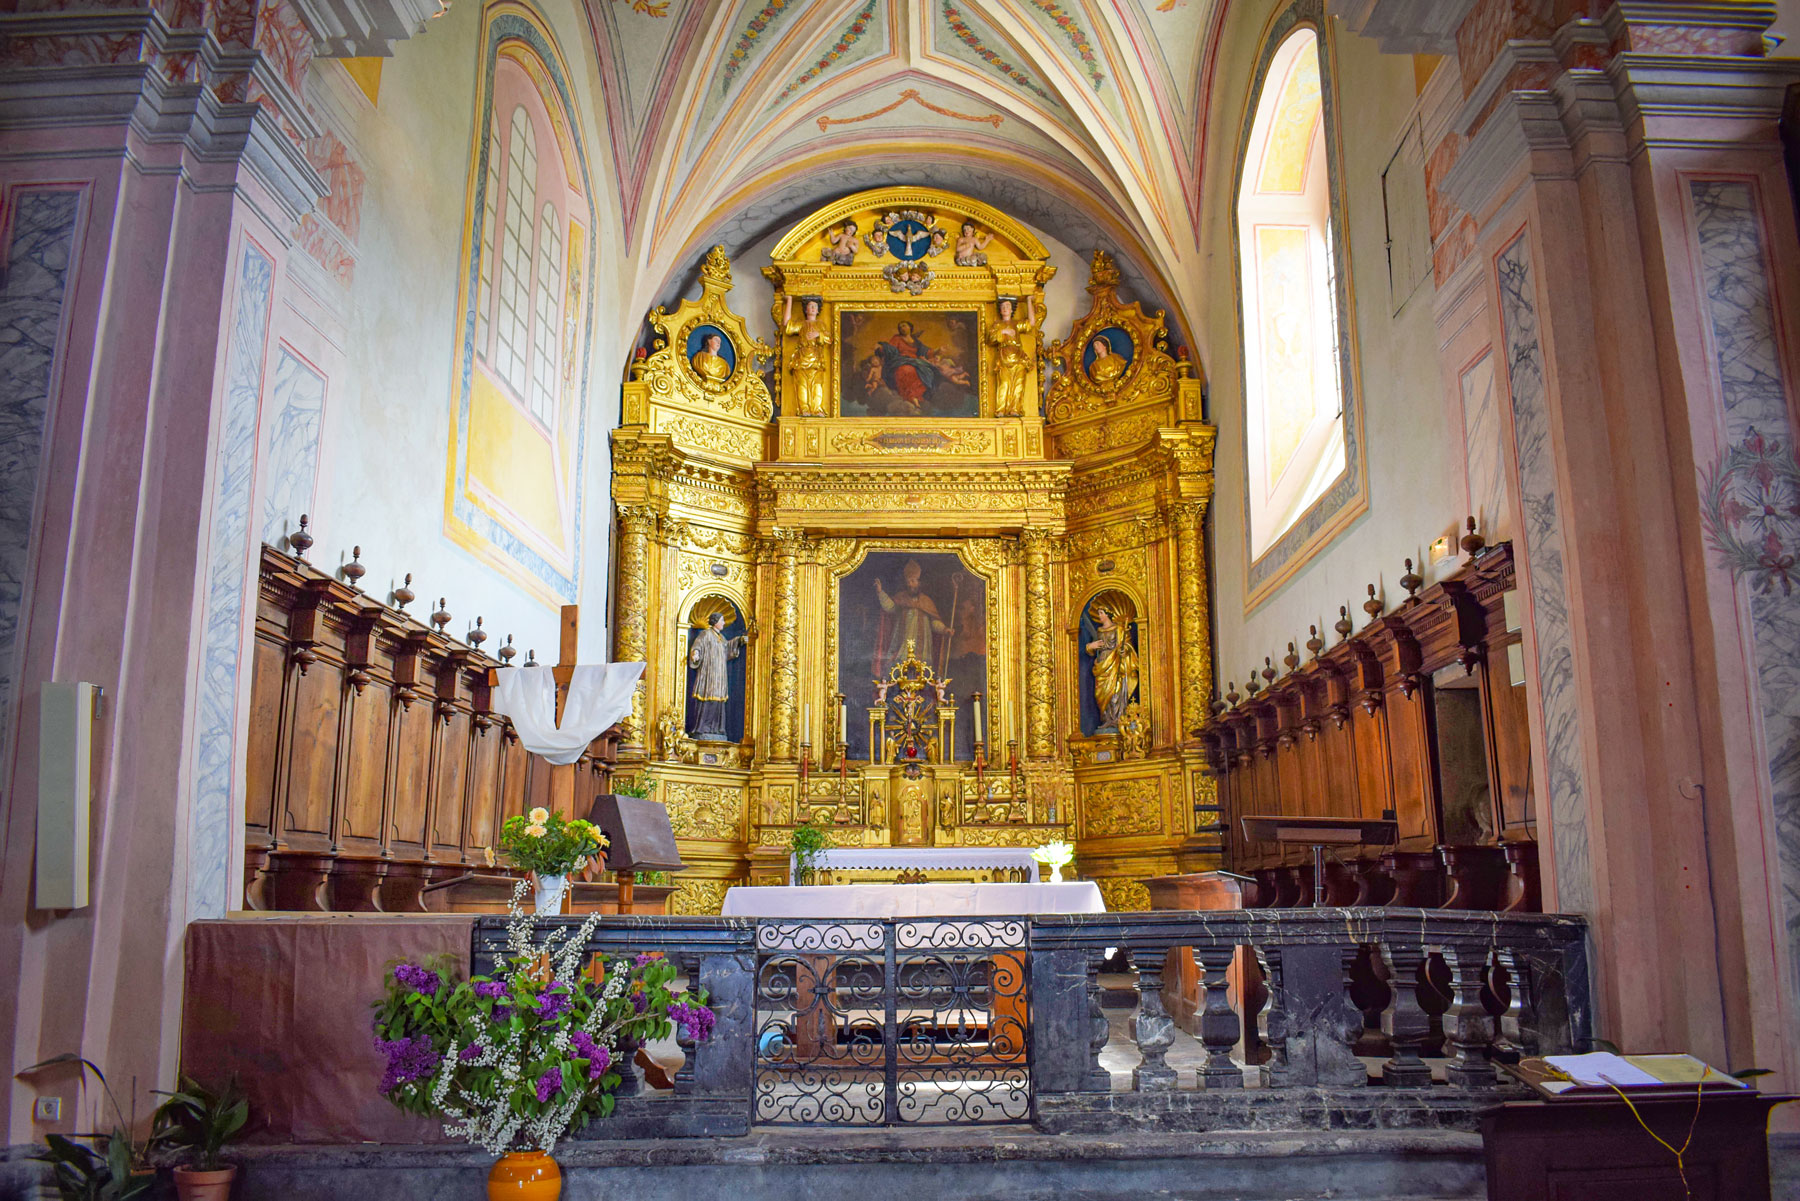 The choir of the Saint-Gras church in Conflans © French Moments